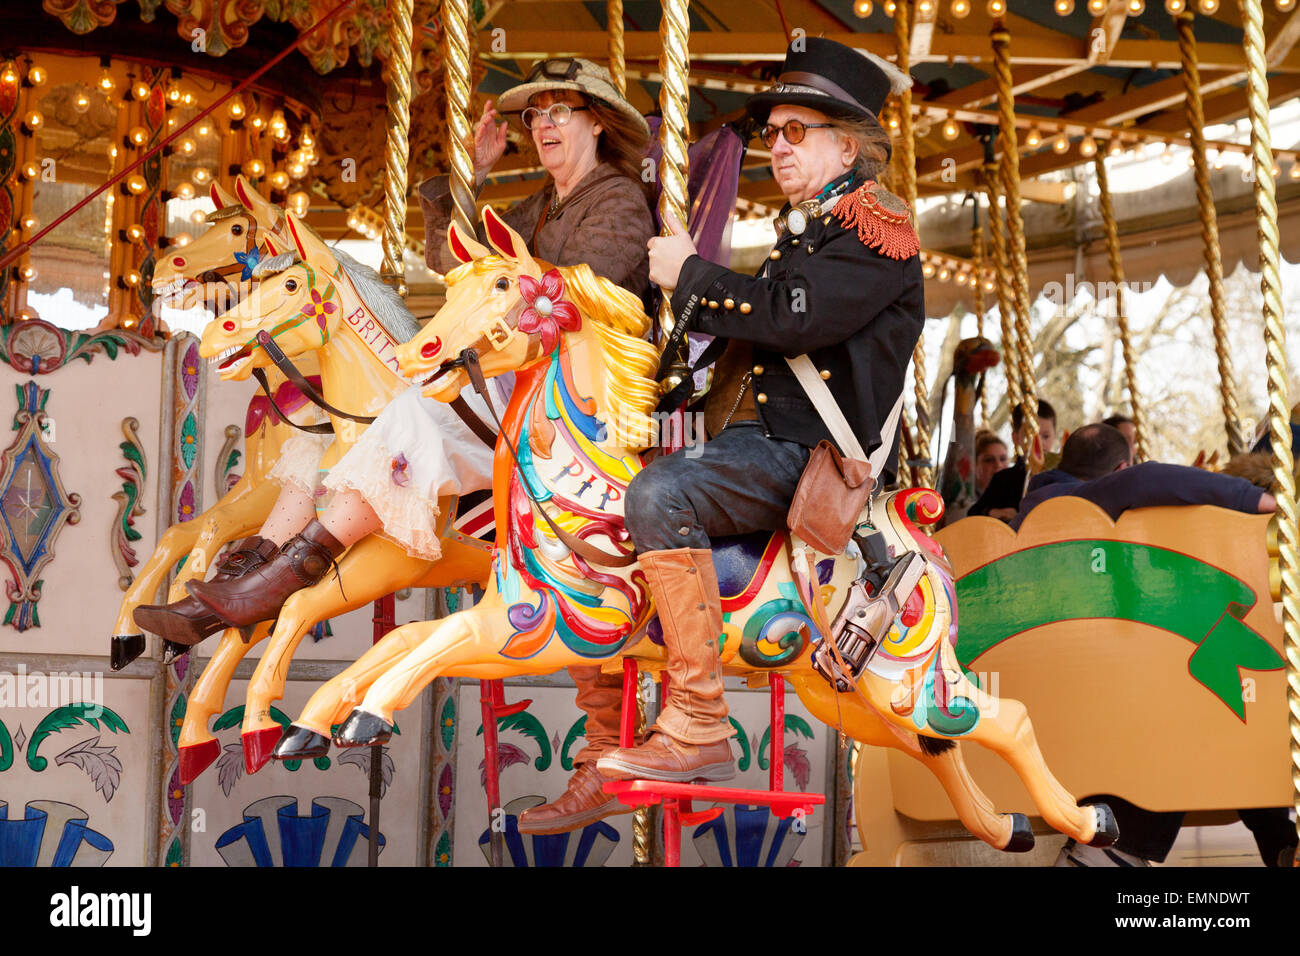 Middle aged caucasian couple having fun on a roundabout or carousel, Norfolk, UK - Stock Image